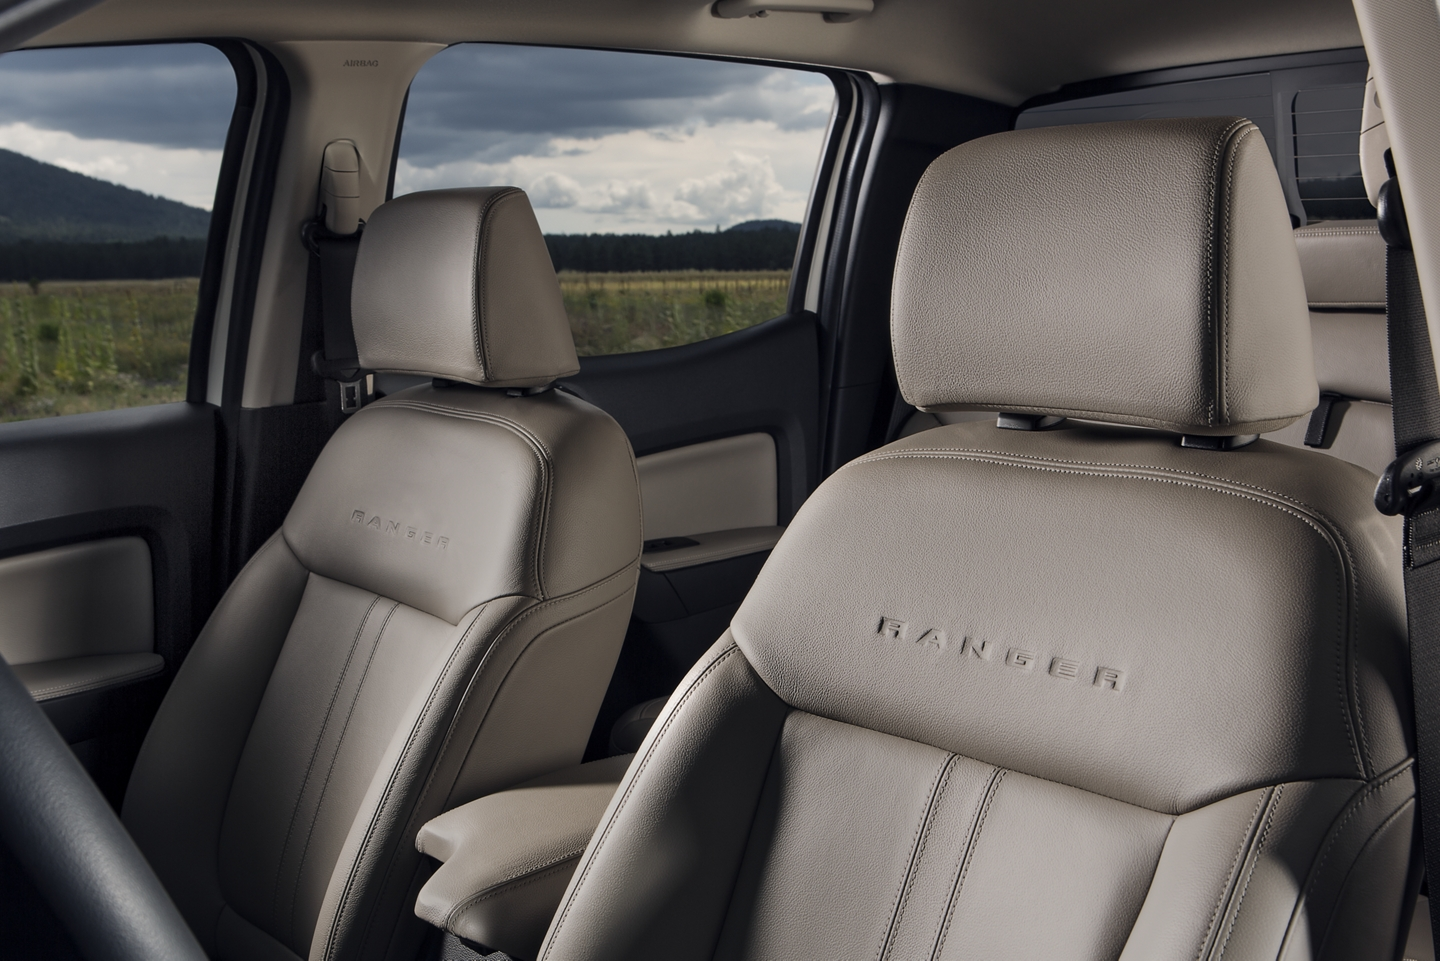 2019 Ford Ranger Seating